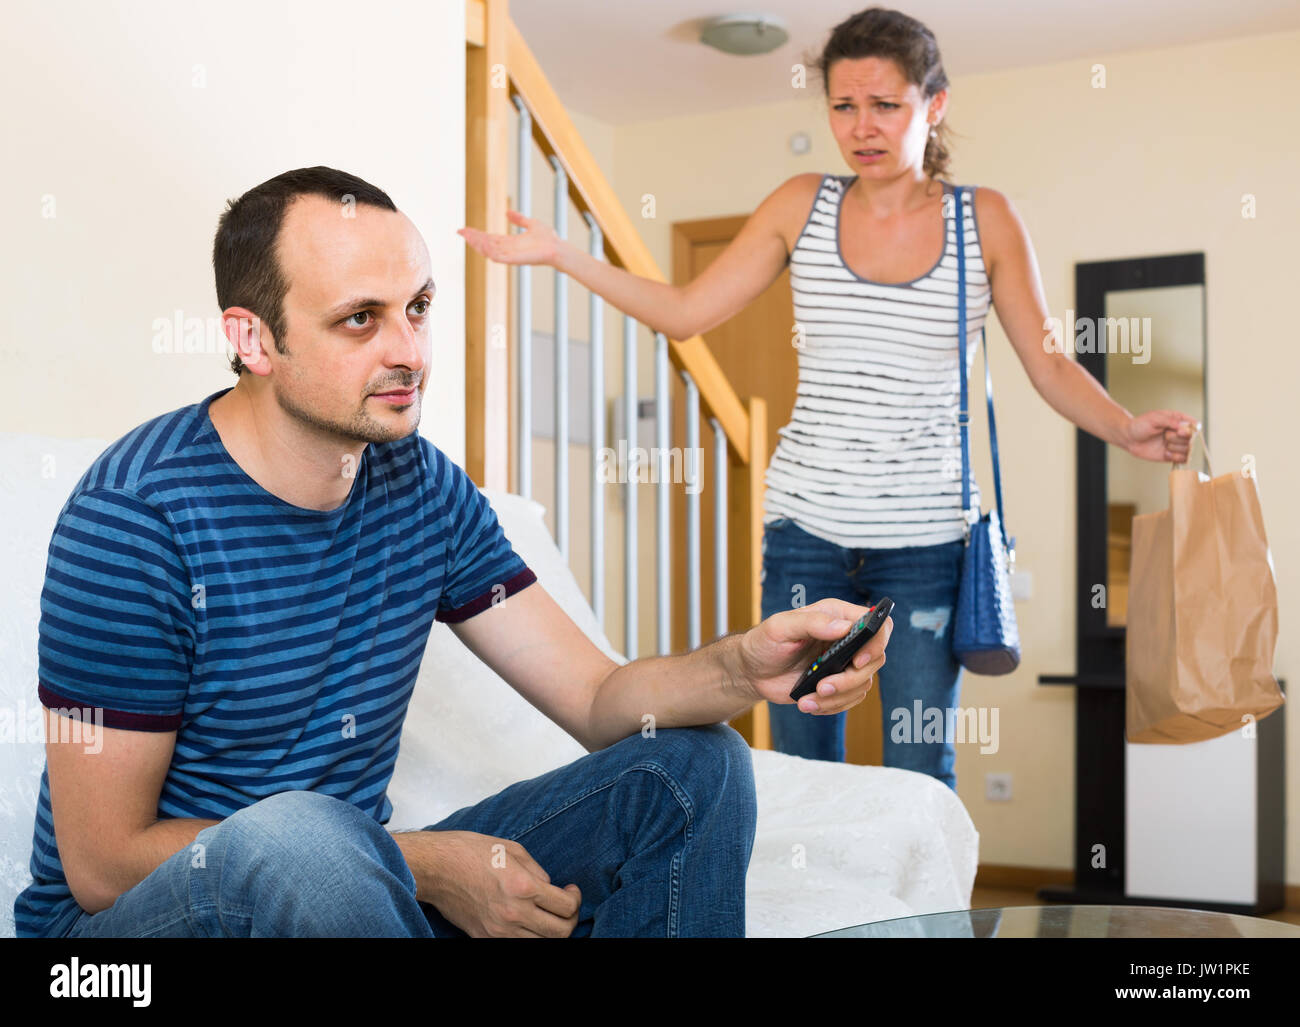 Upset spanish wife and furious husband discussing divorce